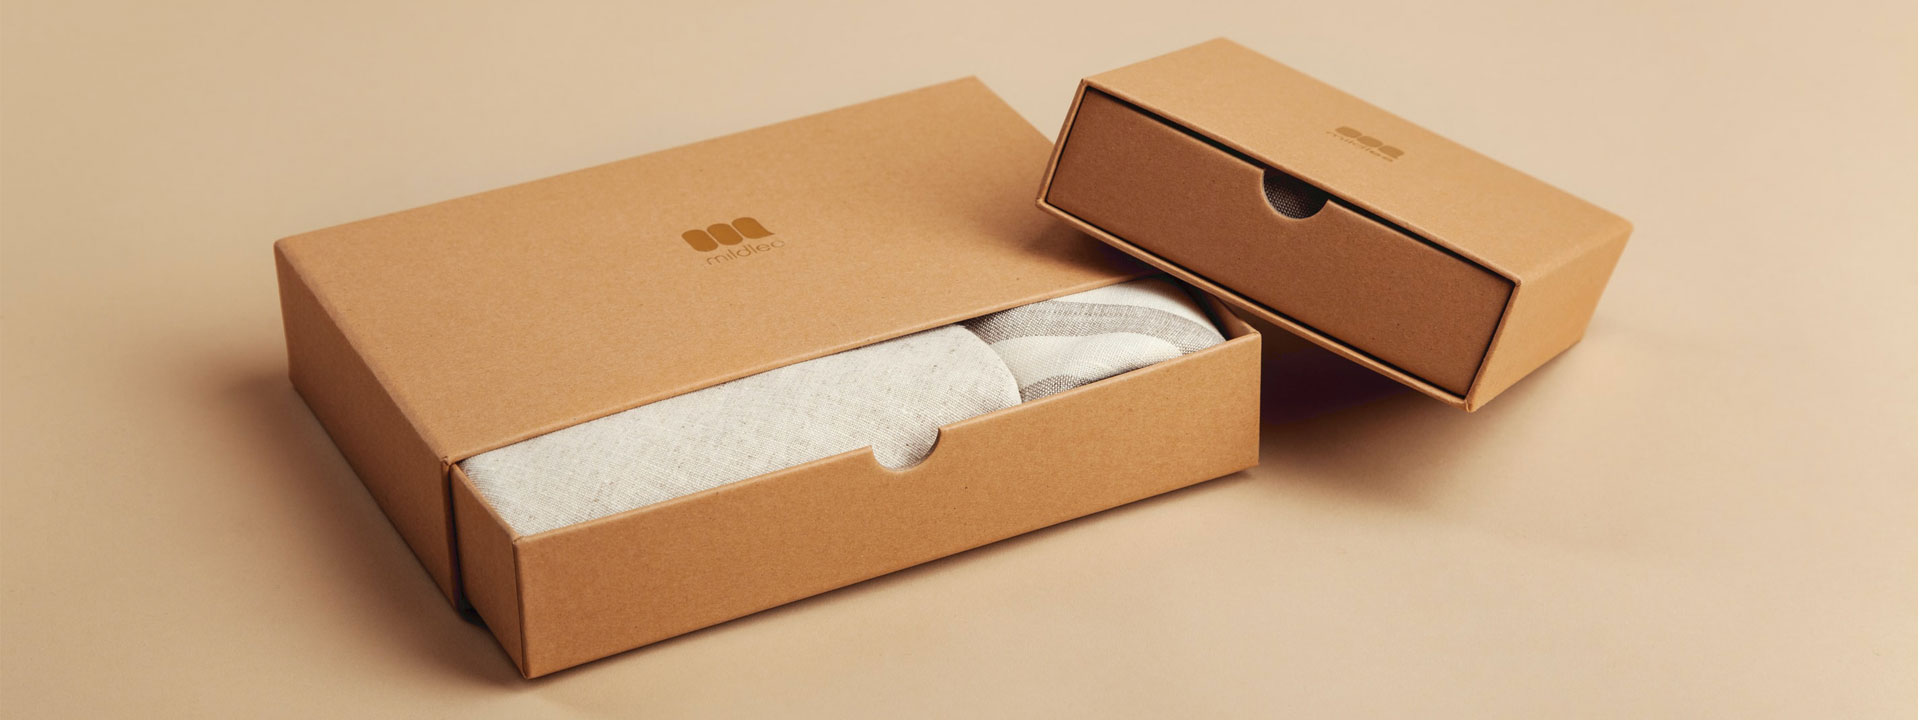 Small box package